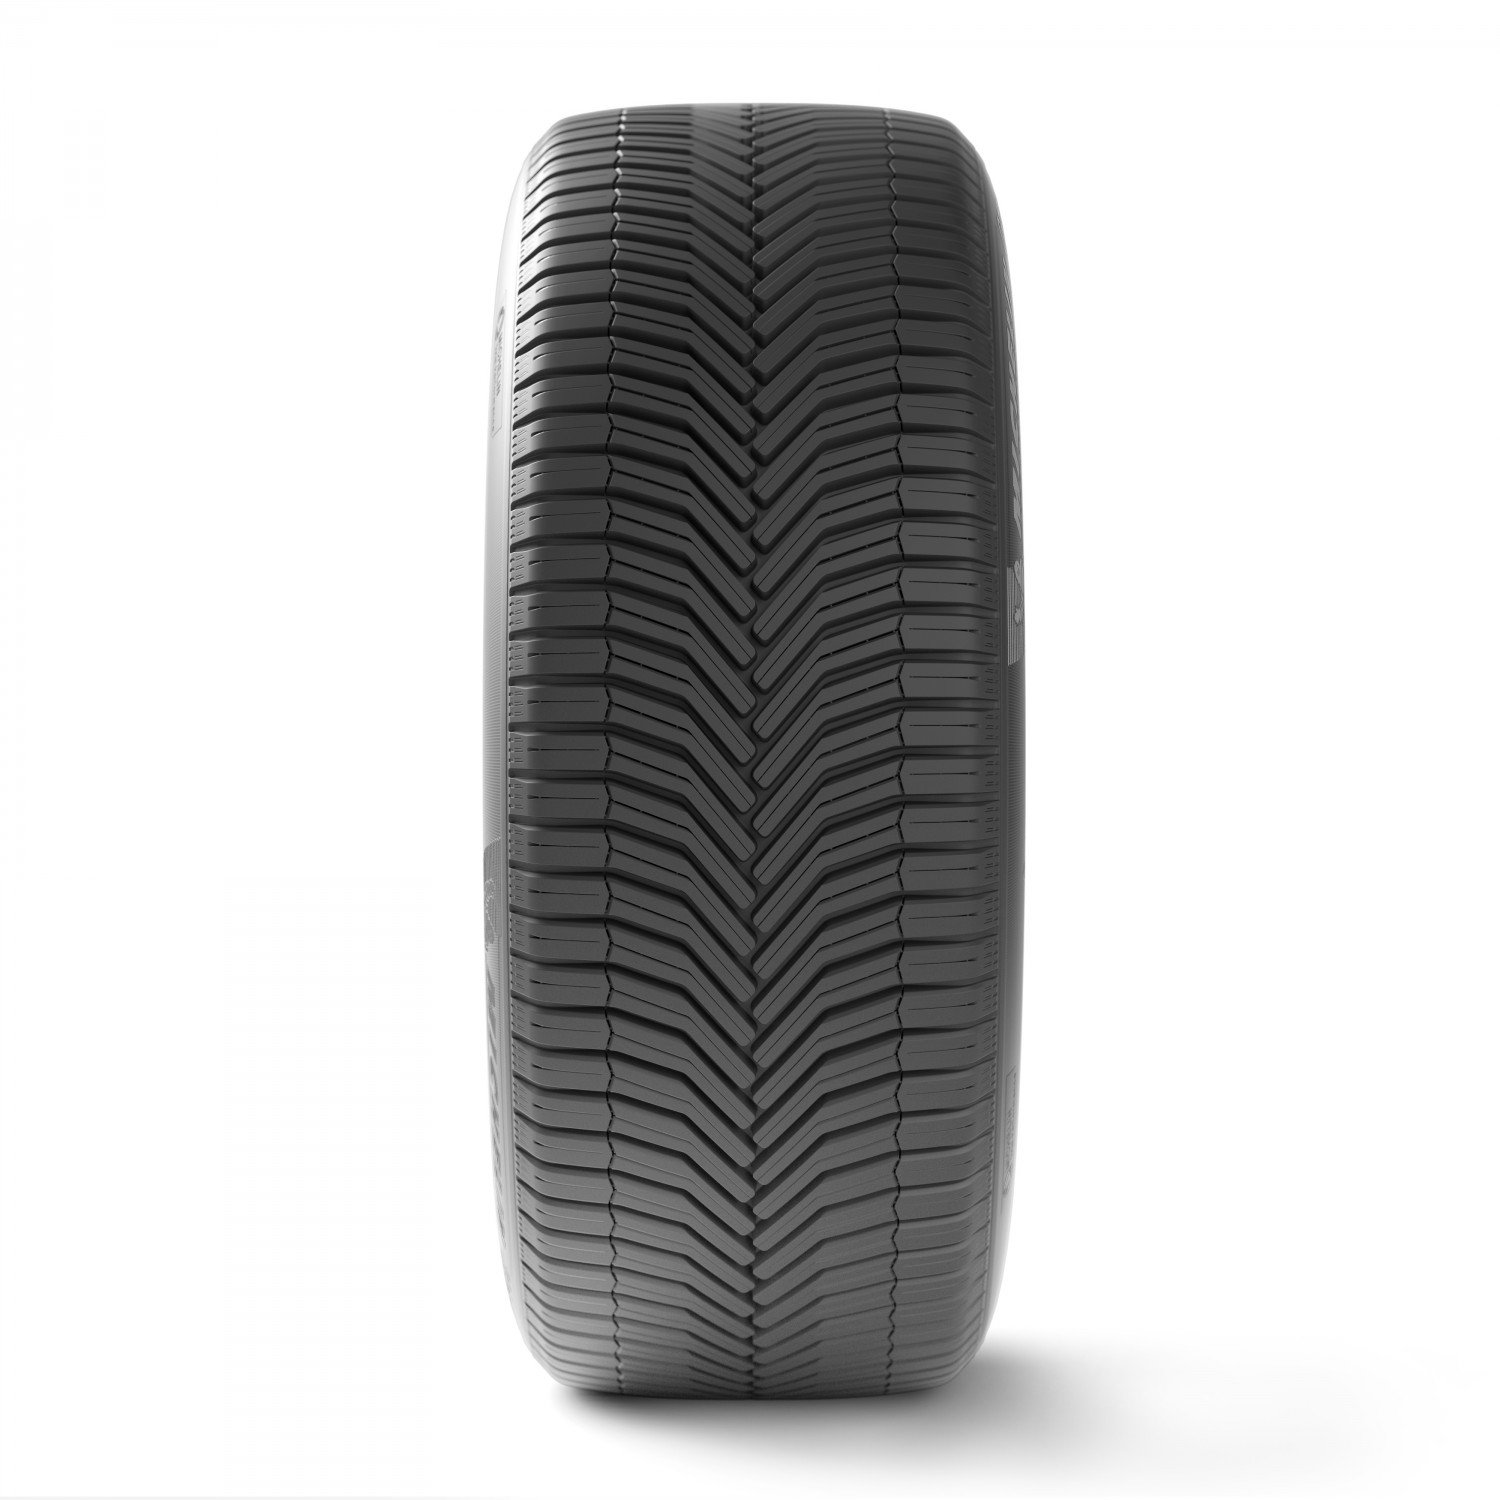 MICHELIN CROSSCLIMATE+ XL - 225/45/17 94W - B/C/69dB - All Season Tyre (Passenger Car) ENERGY E3B 1